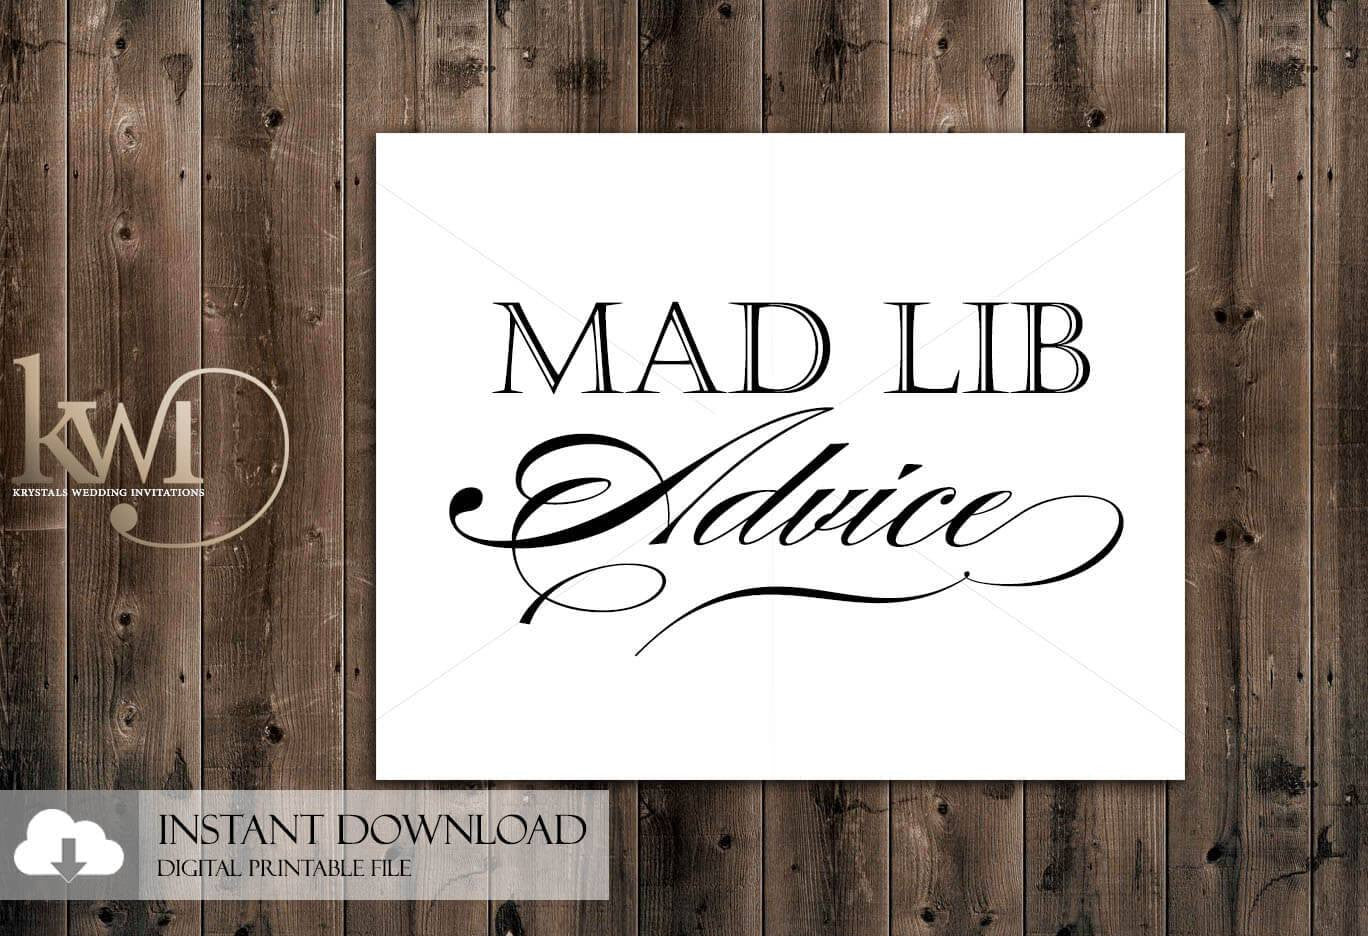 DIY Printables - 8x10 - Mad Lib Advice Sign - Krystals Wedding Invitations